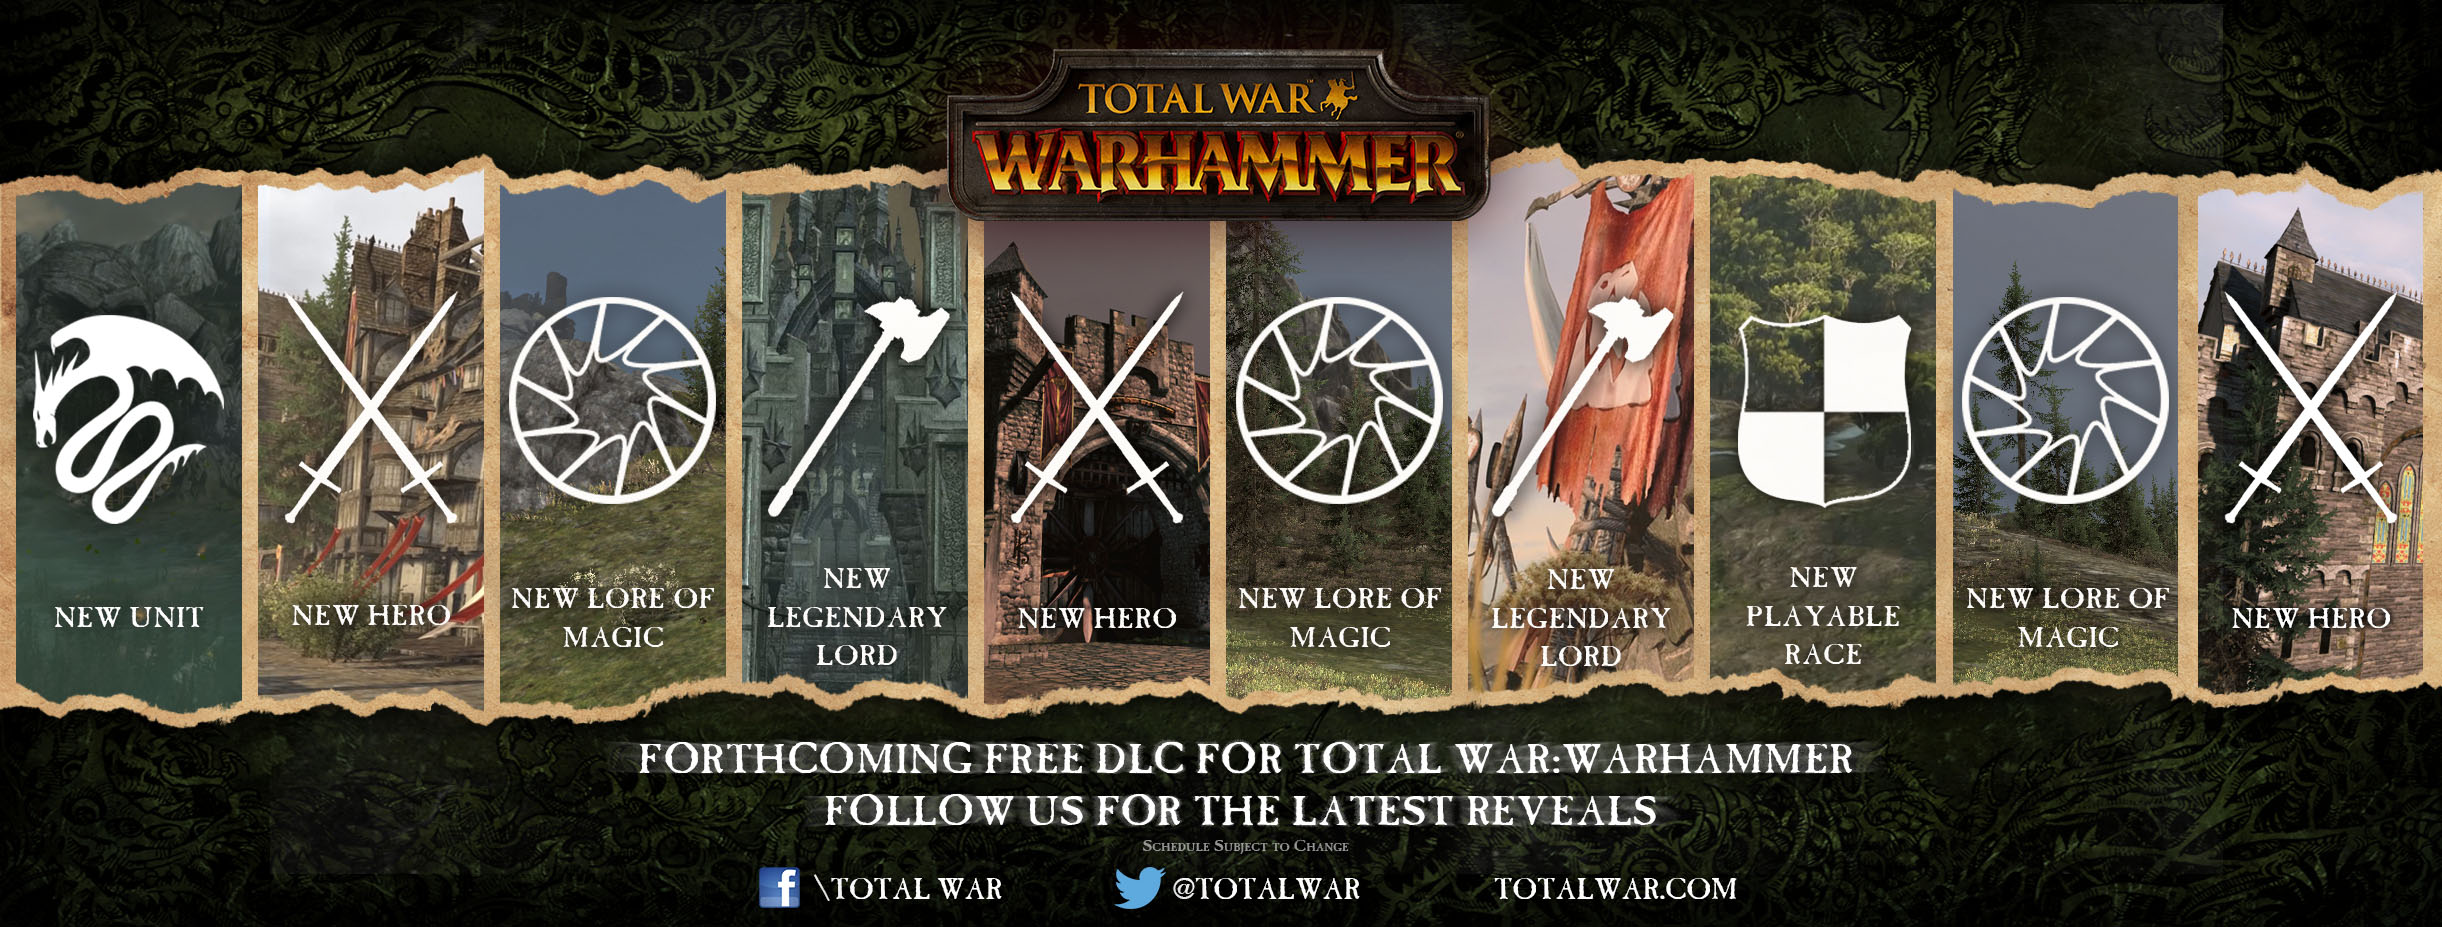 total war warhammer 2 download free dlc